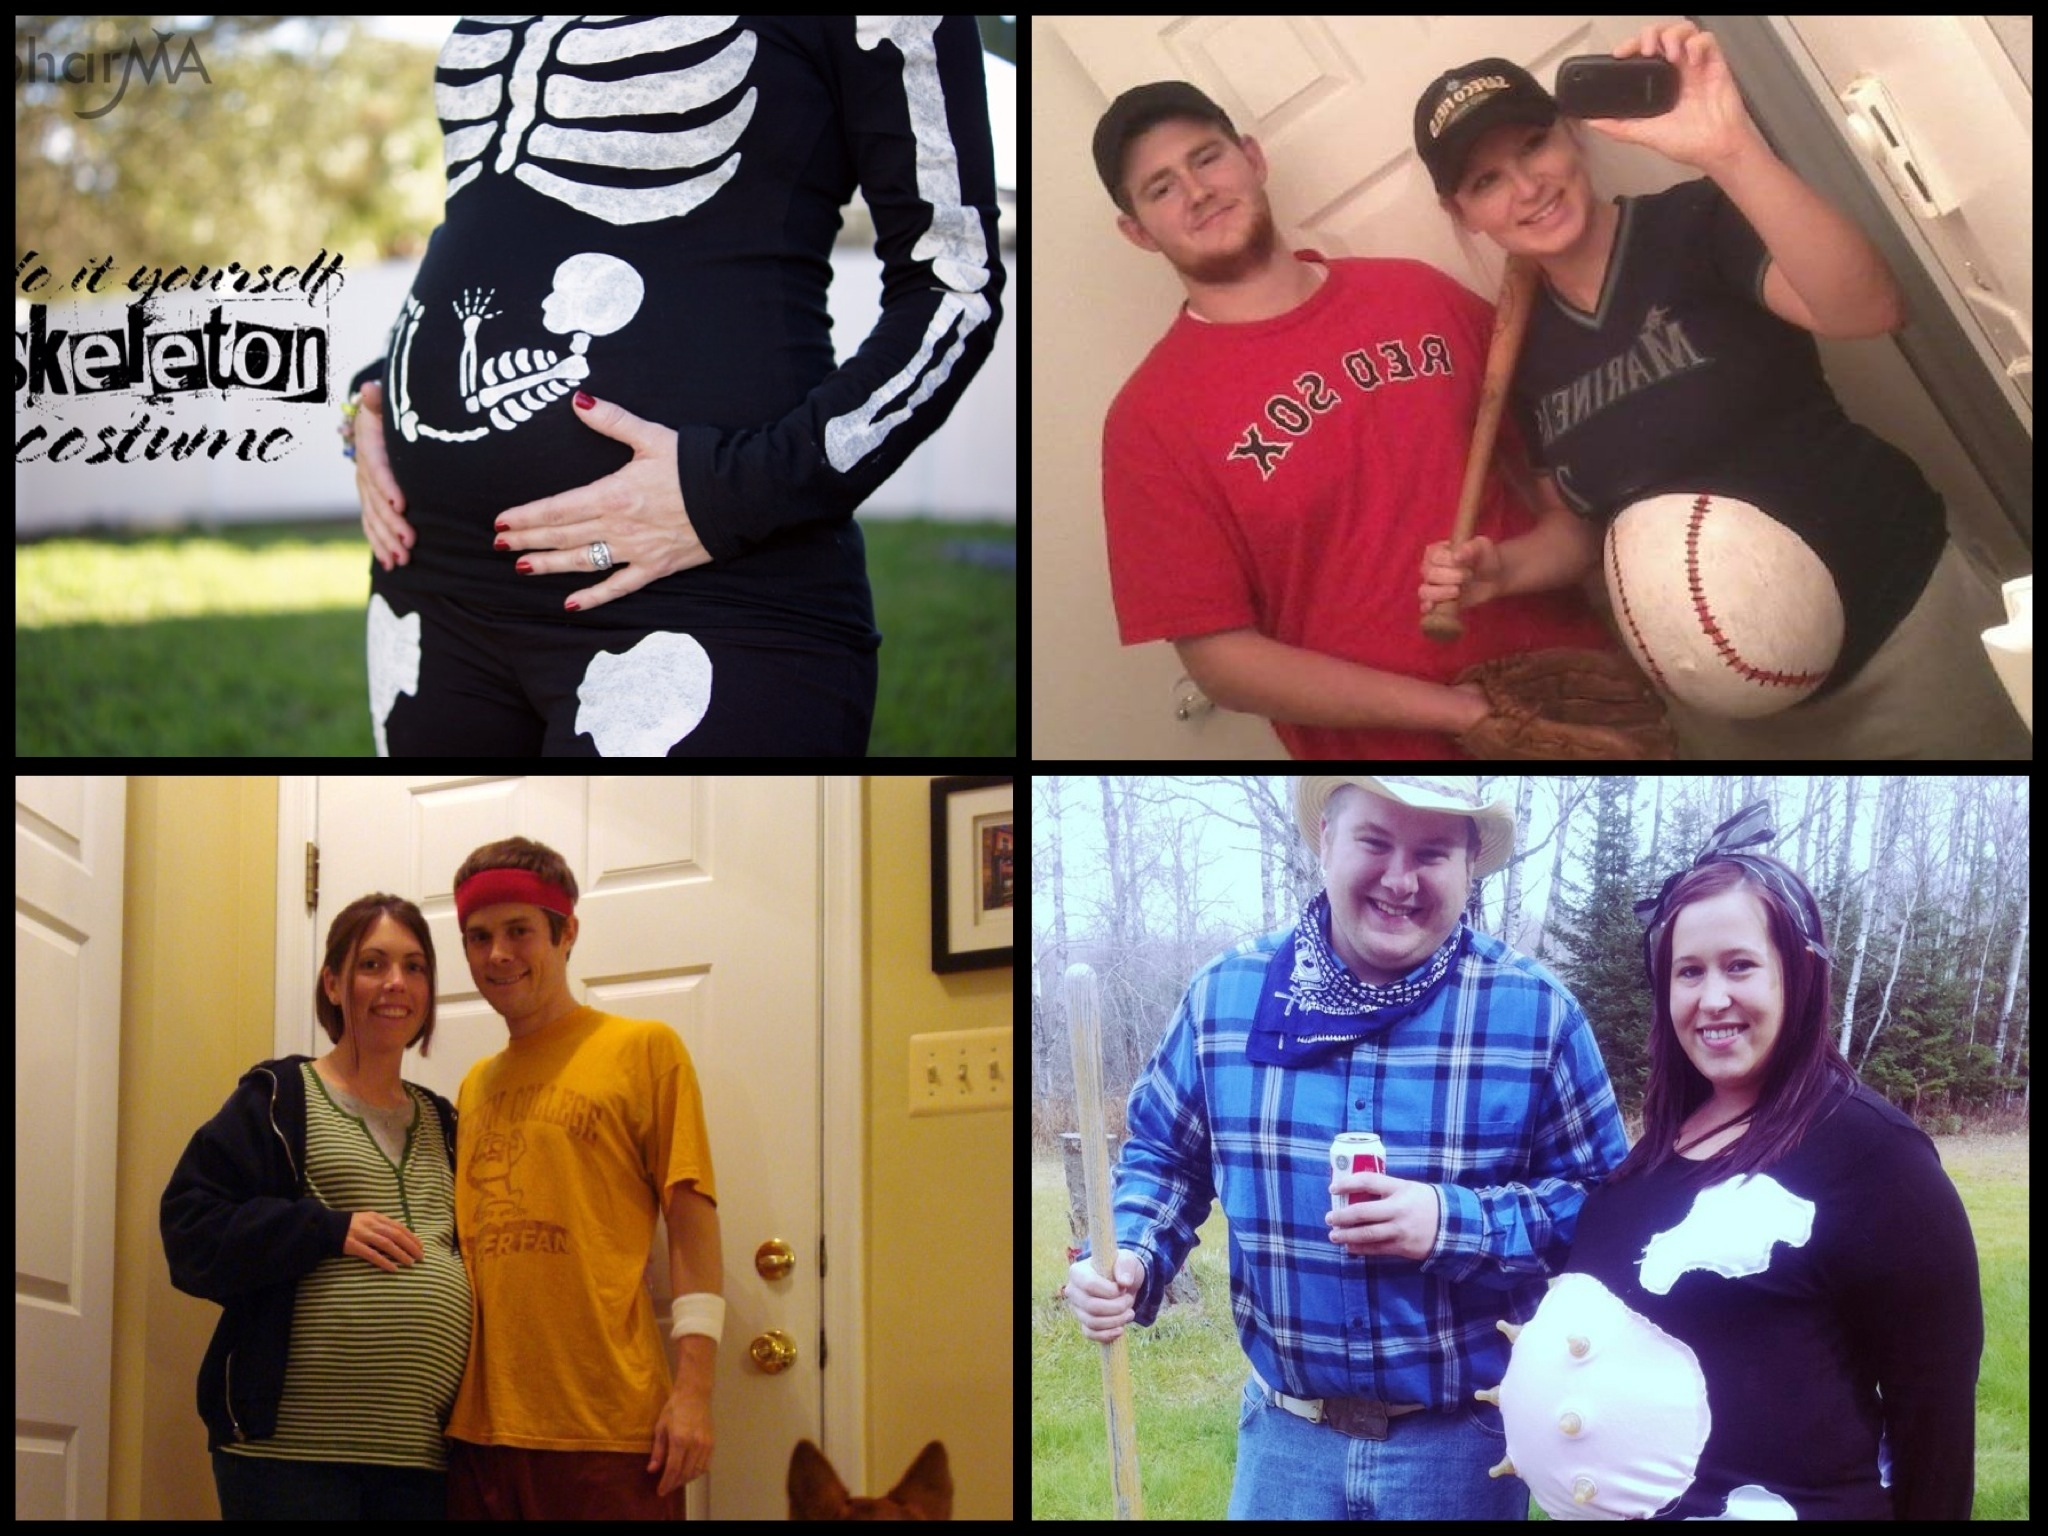 5 fun halloween costume ideas for pregnant women | parentmap